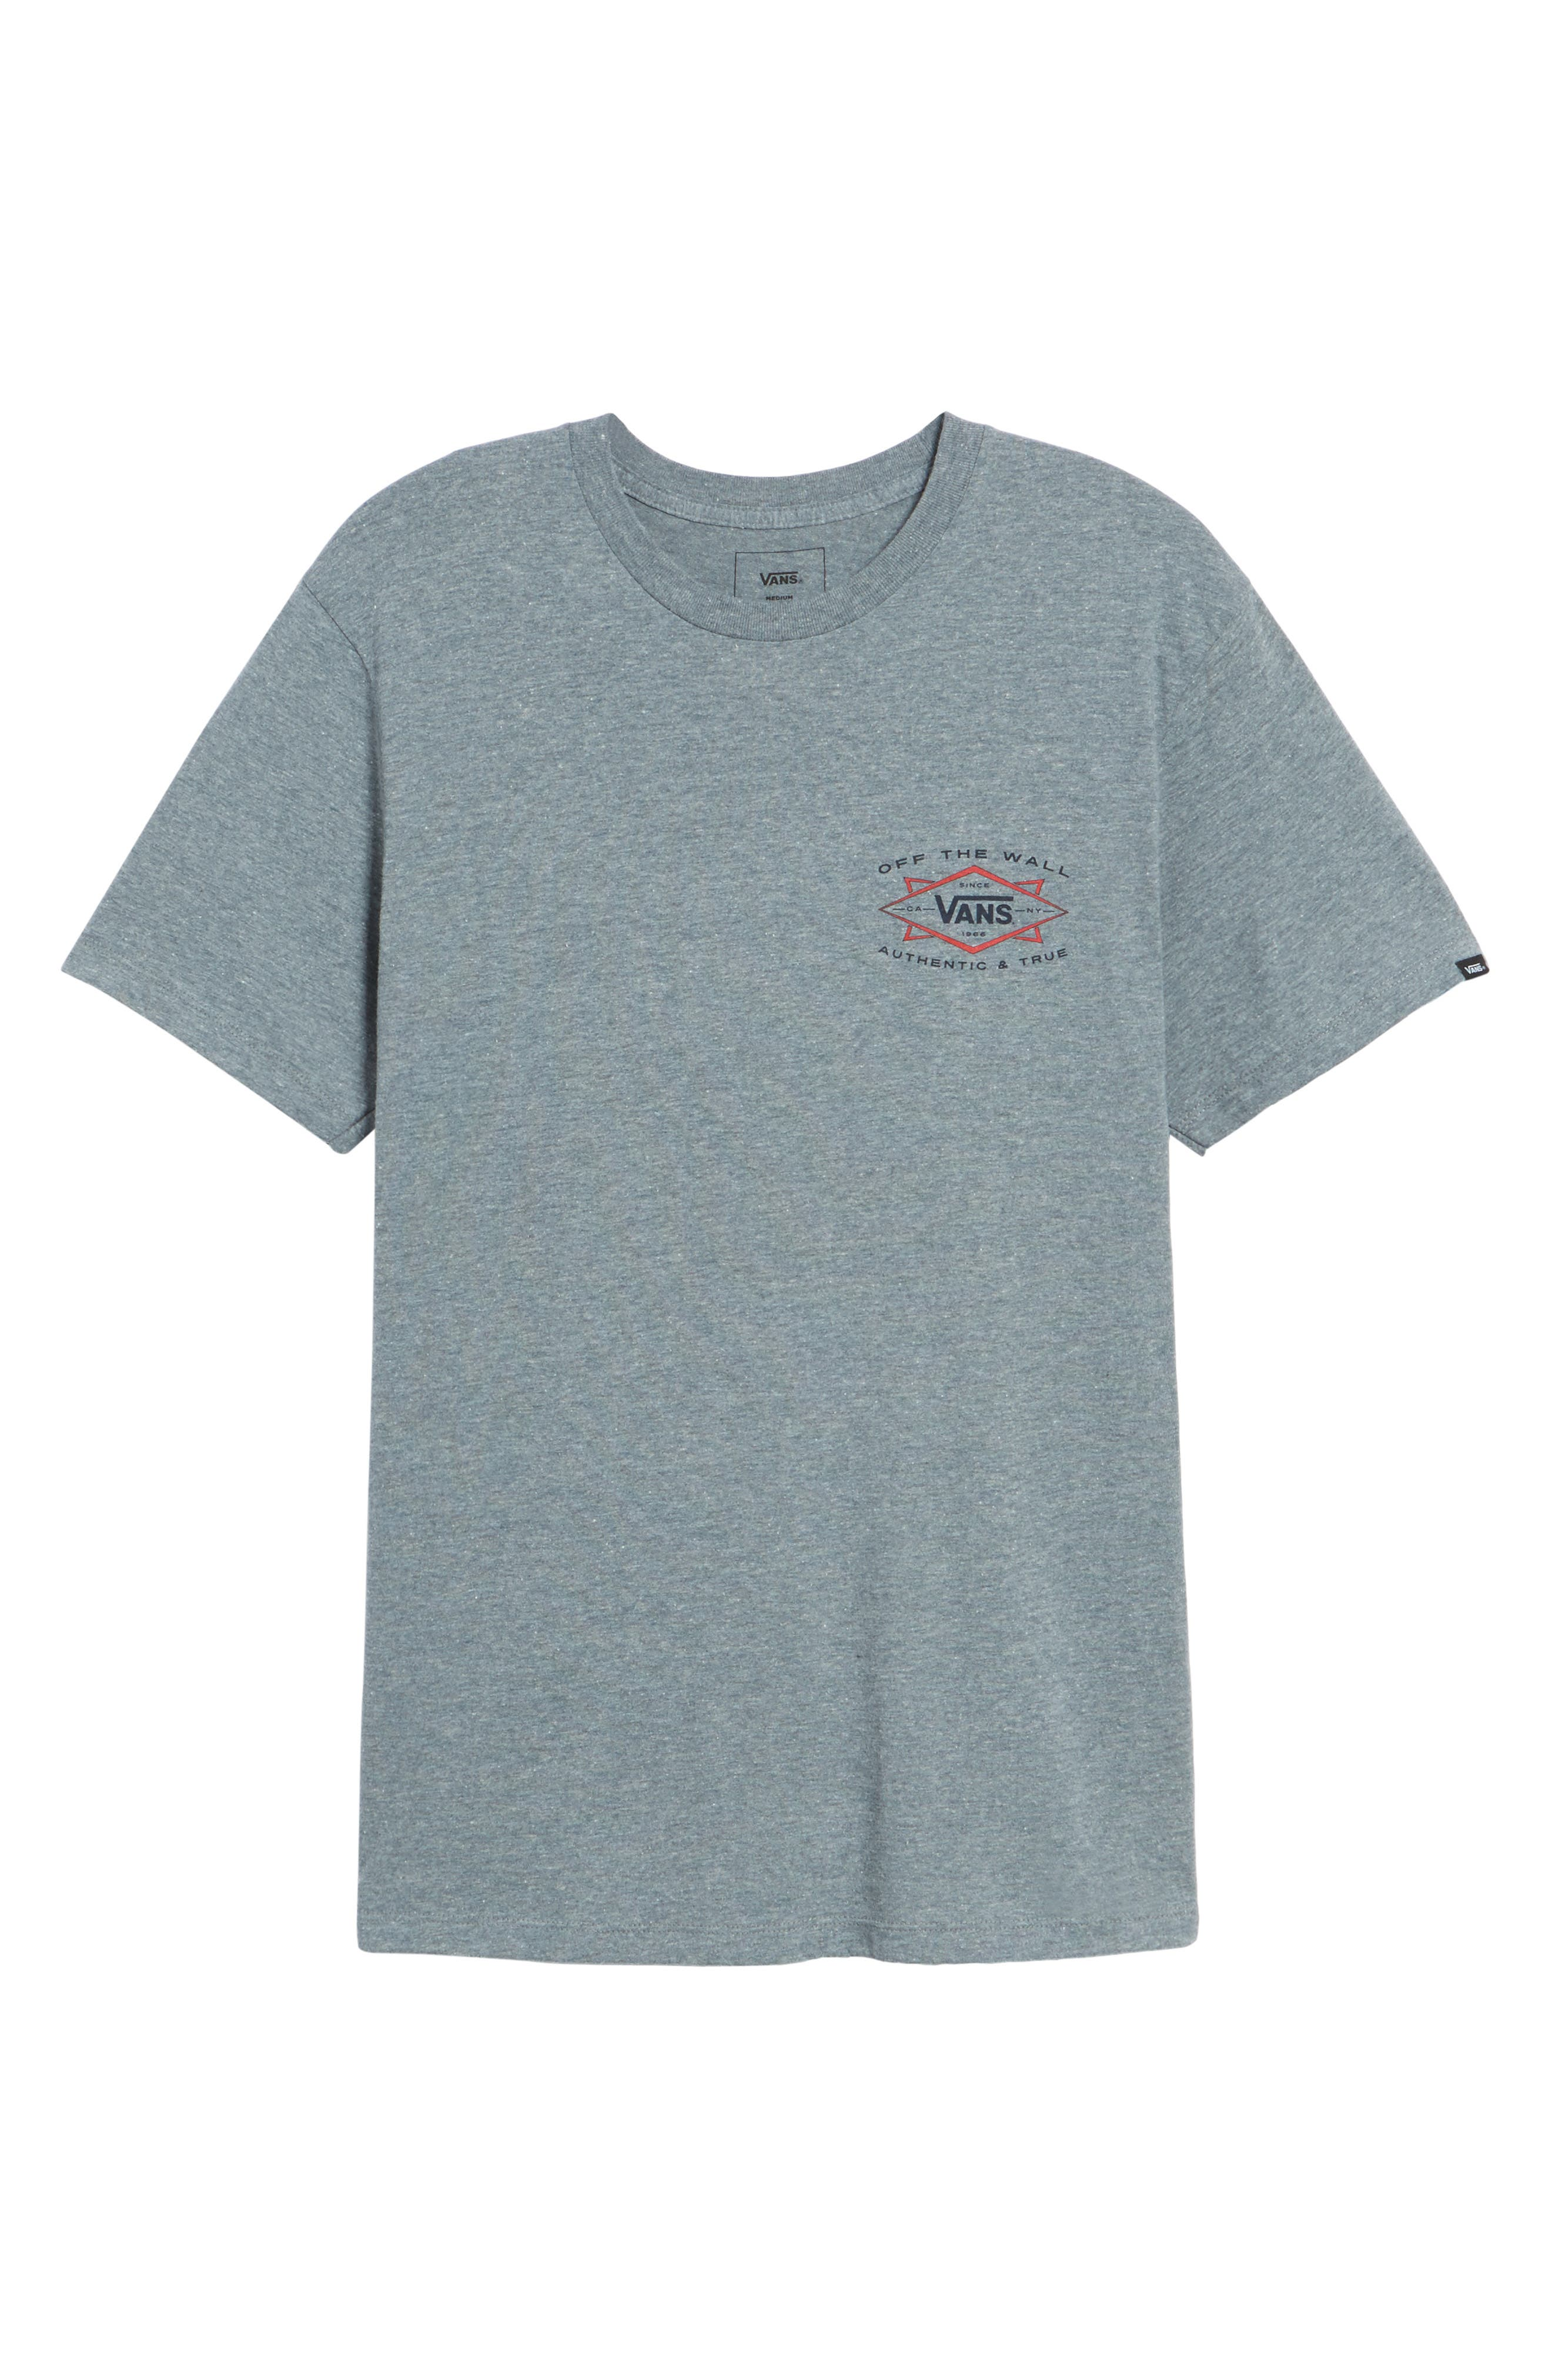 Off the Wall Shaper Graphic T-Shirt,                             Alternate thumbnail 6, color,                             Heather Grey